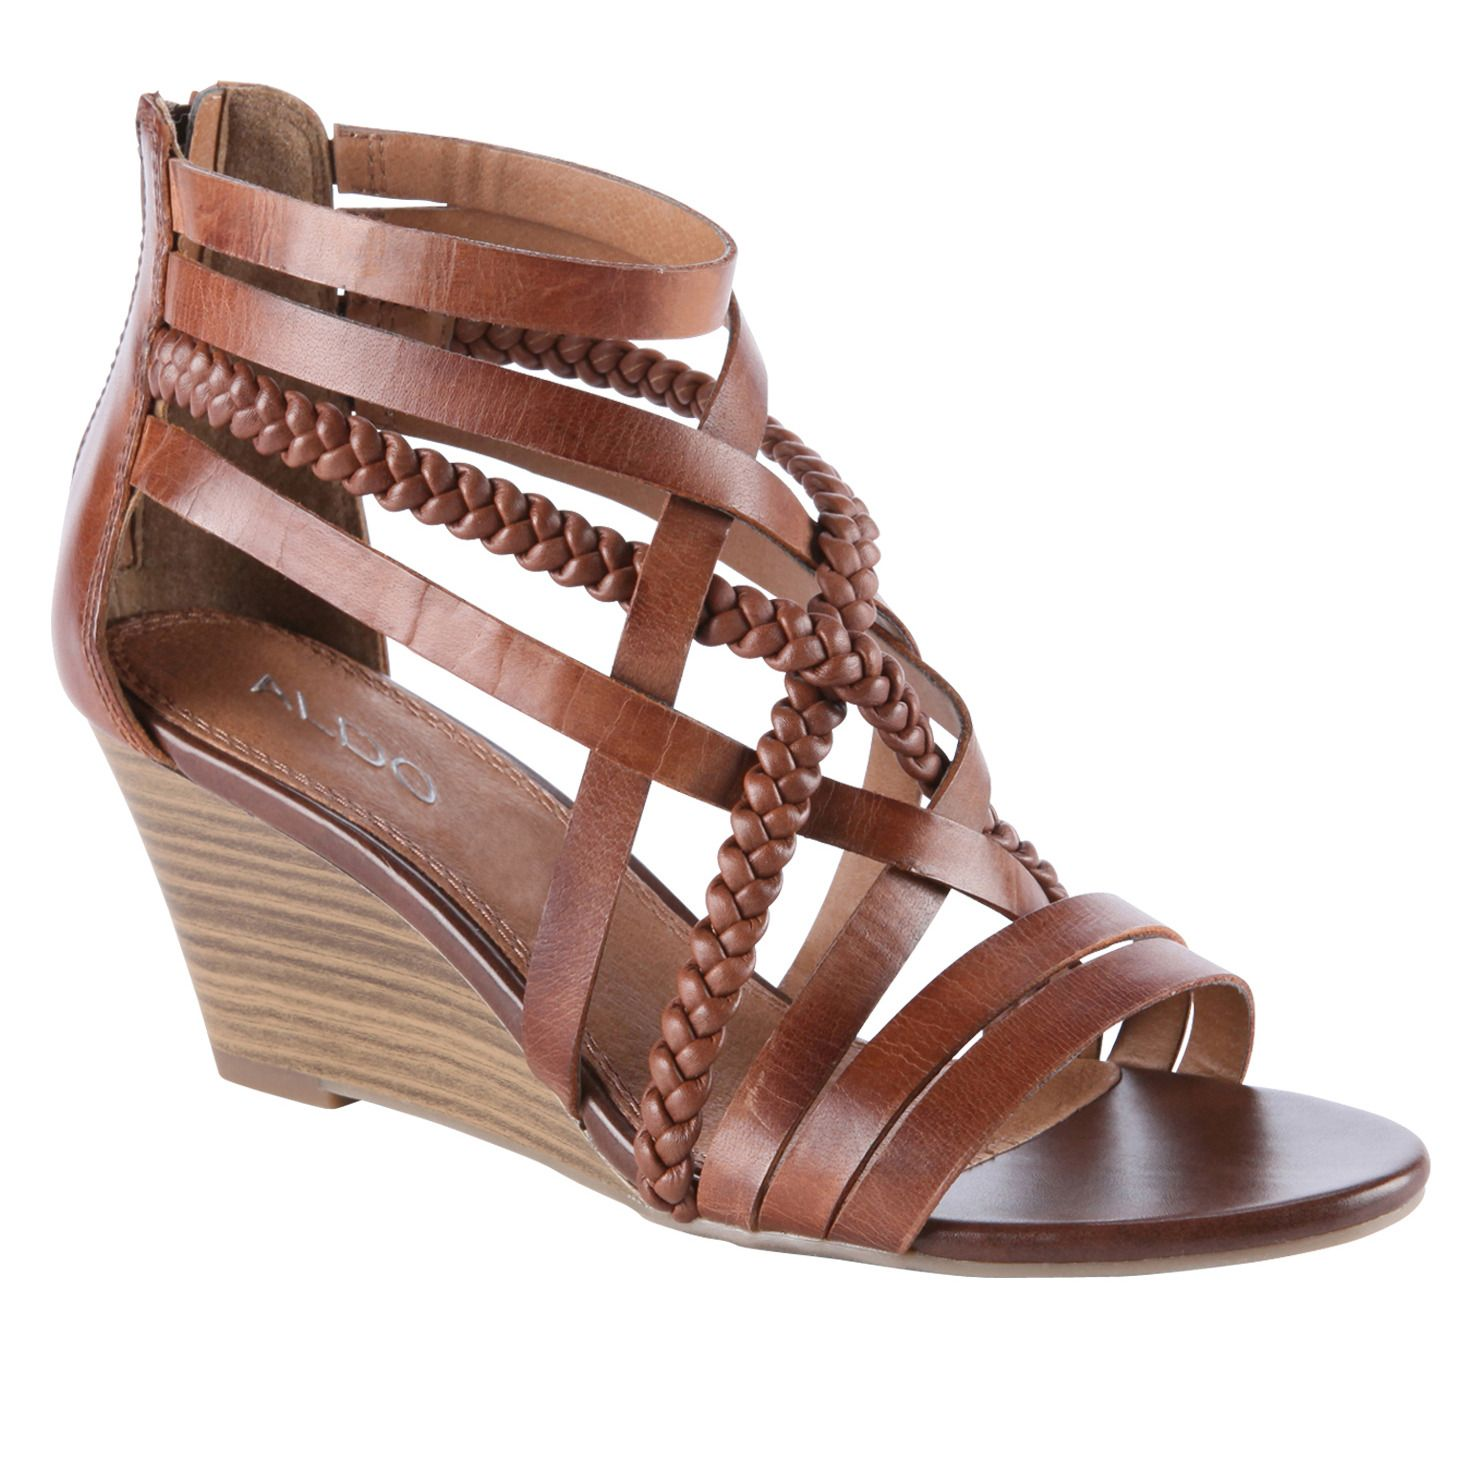 SALEN - women s wedges sandals for sale at ALDO Shoes.